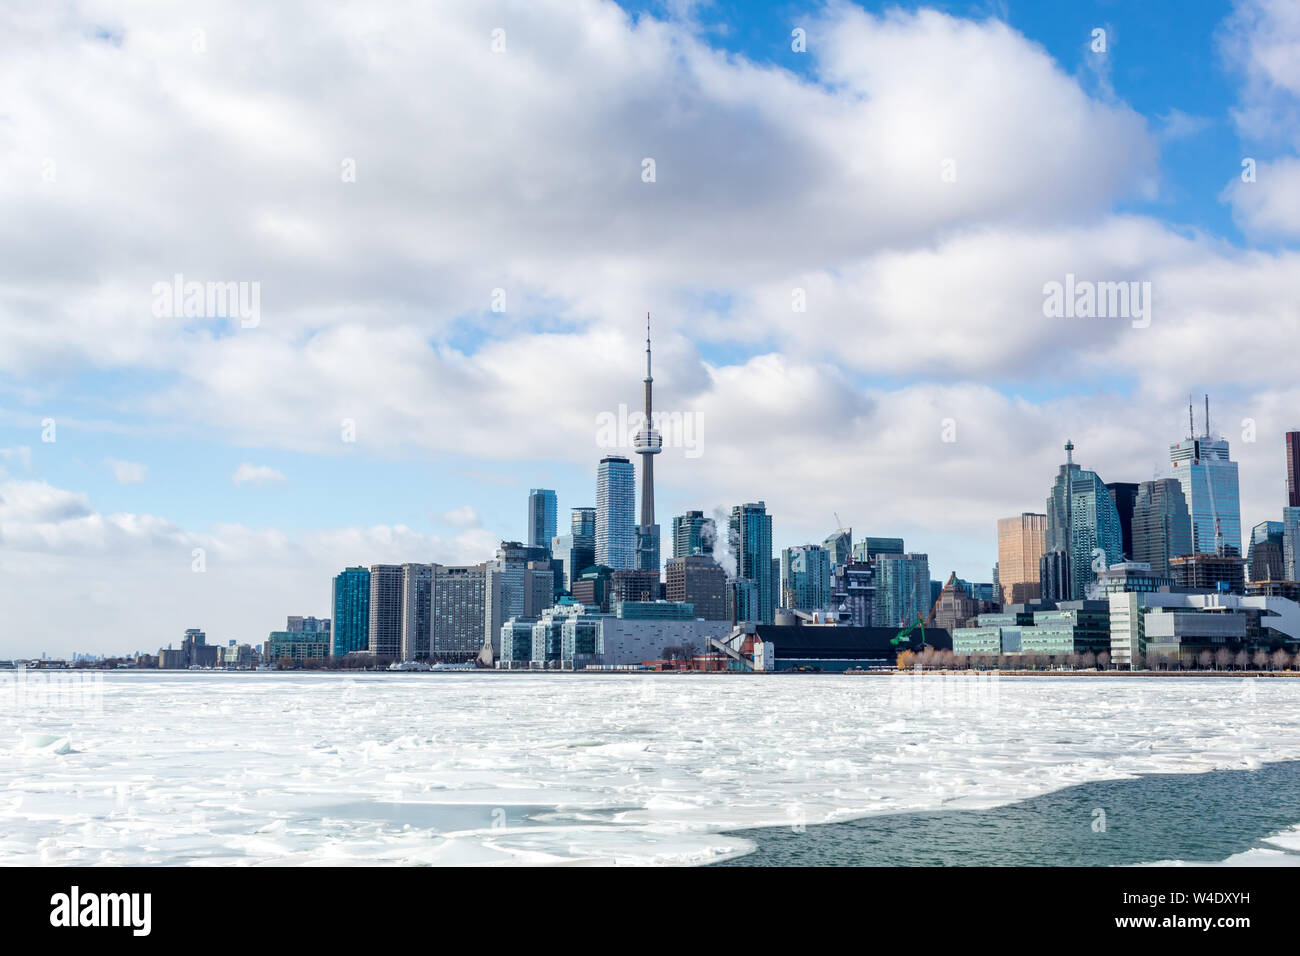 Toronto city skyline with an icy Lake Ontario in-front. Stock Photo